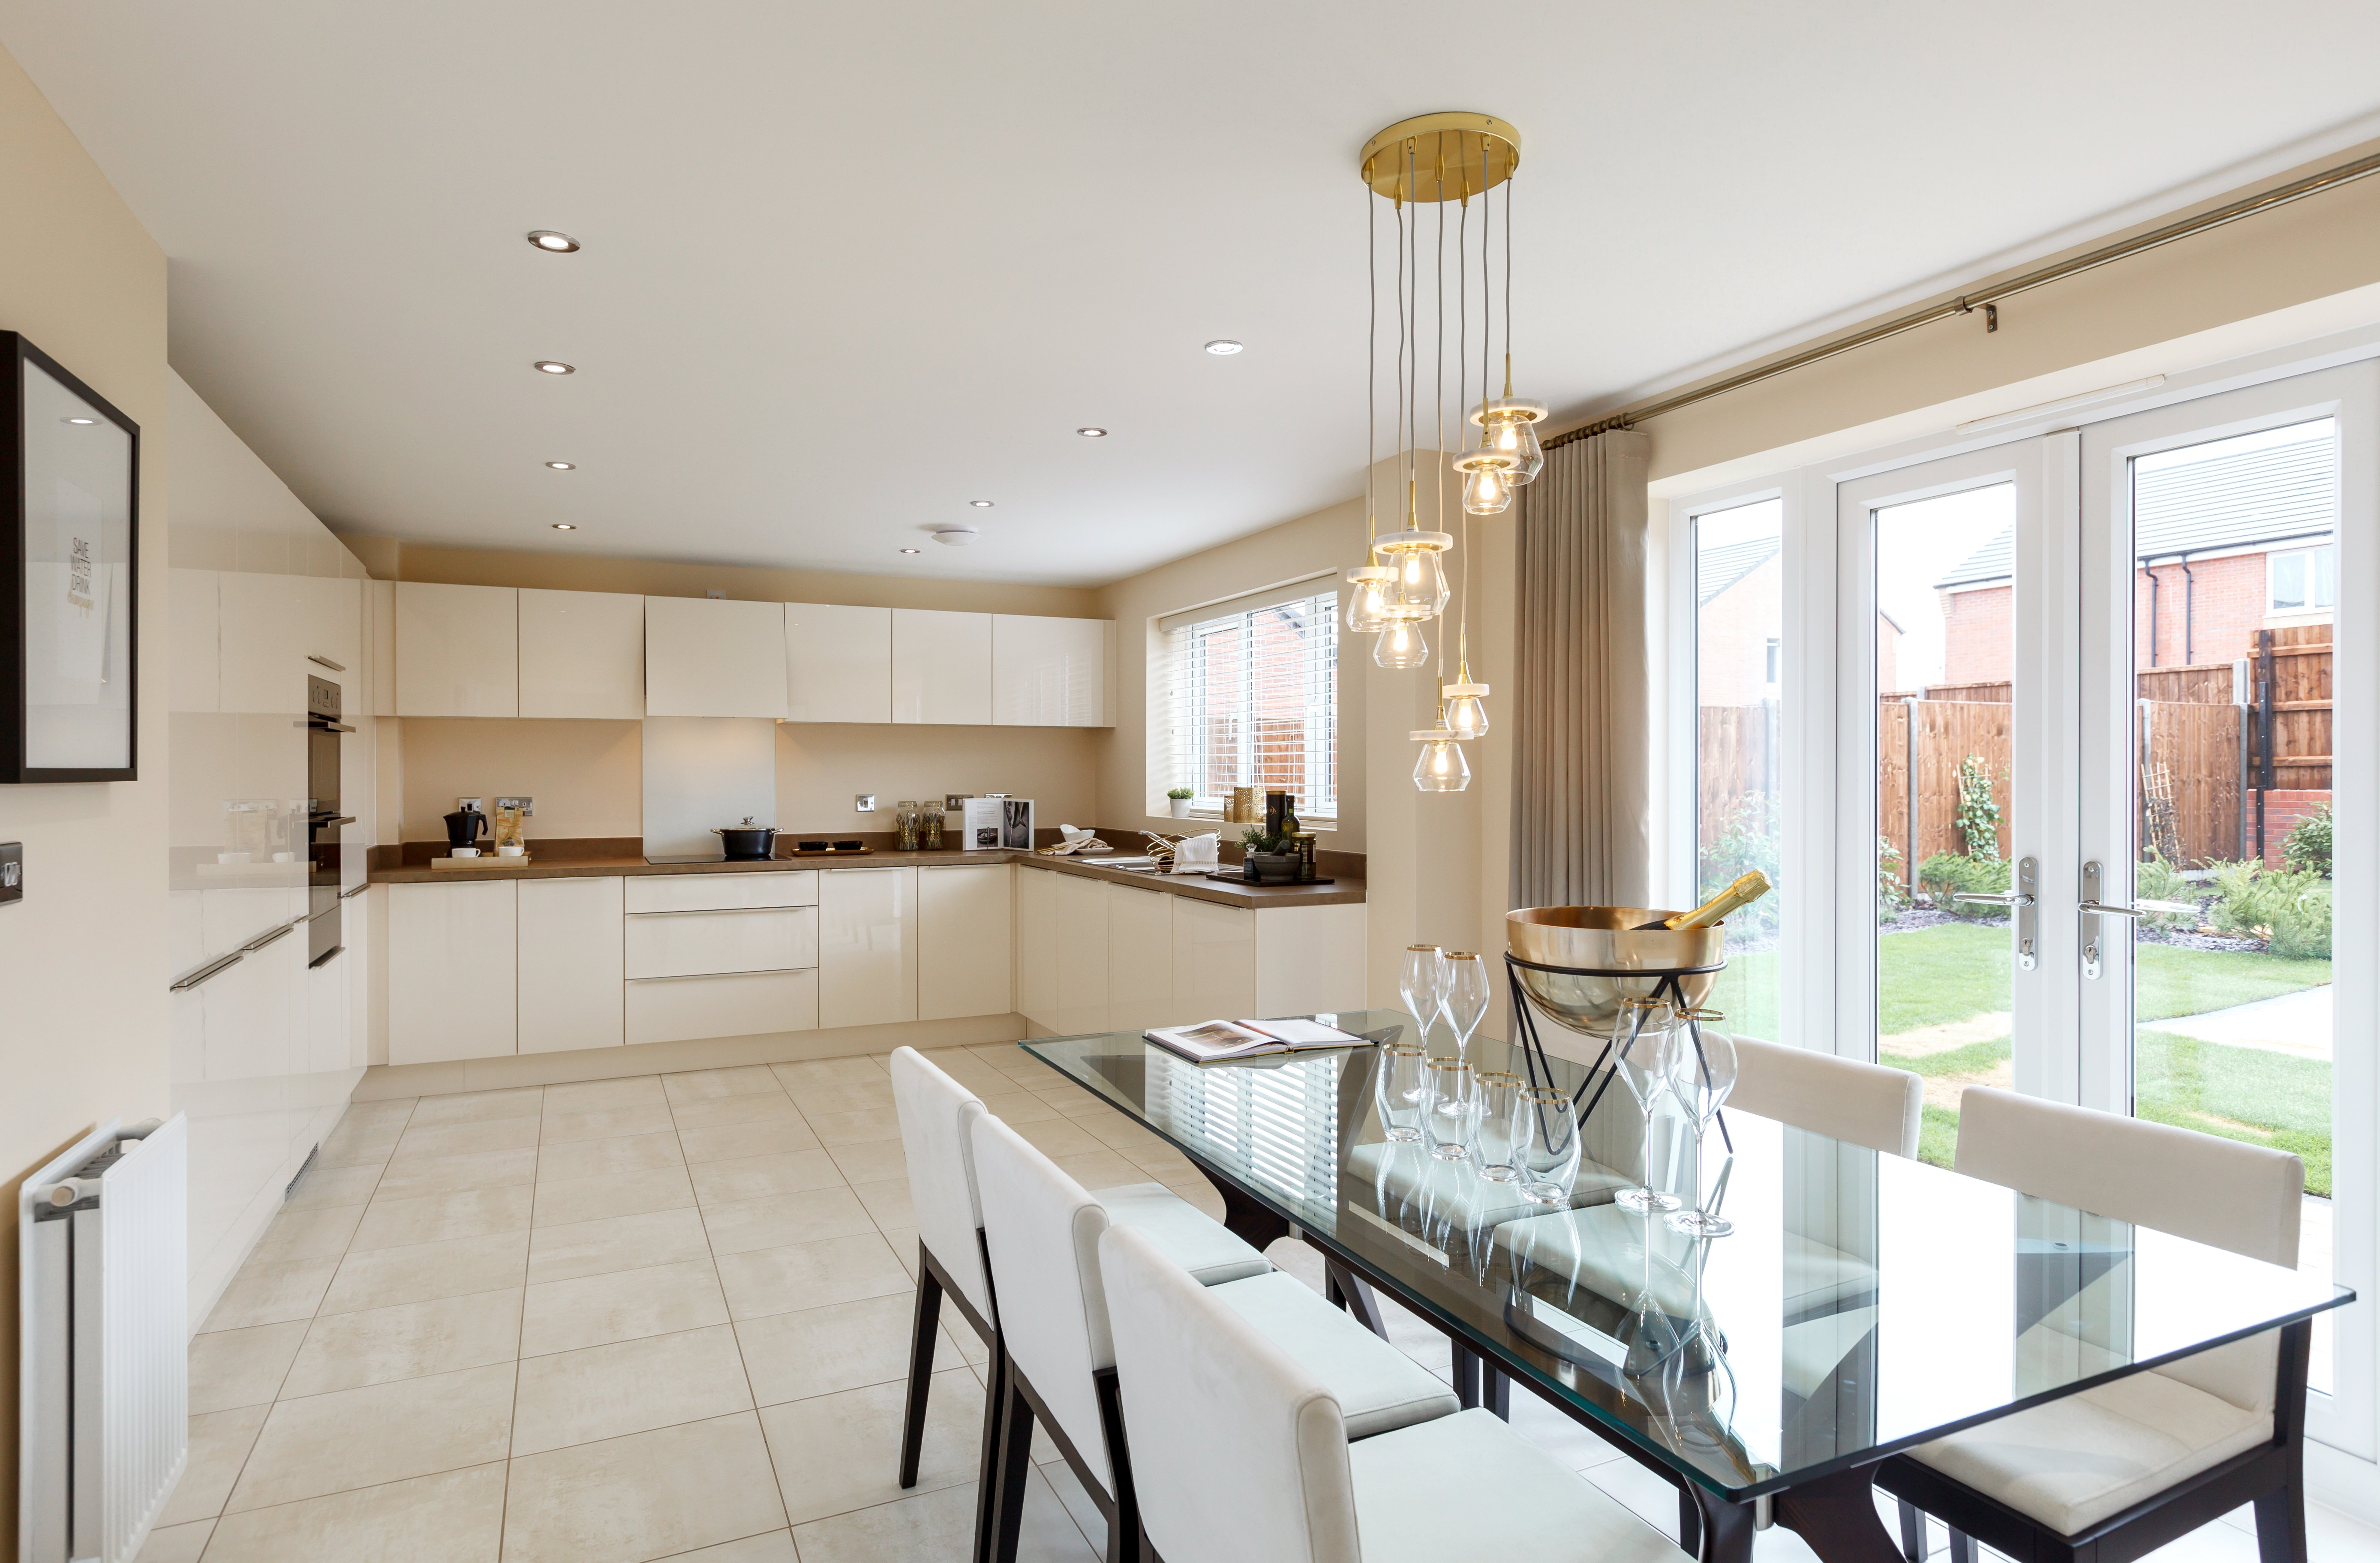 TW_NM_The Shires_Haddenham_441_Kitchen 1